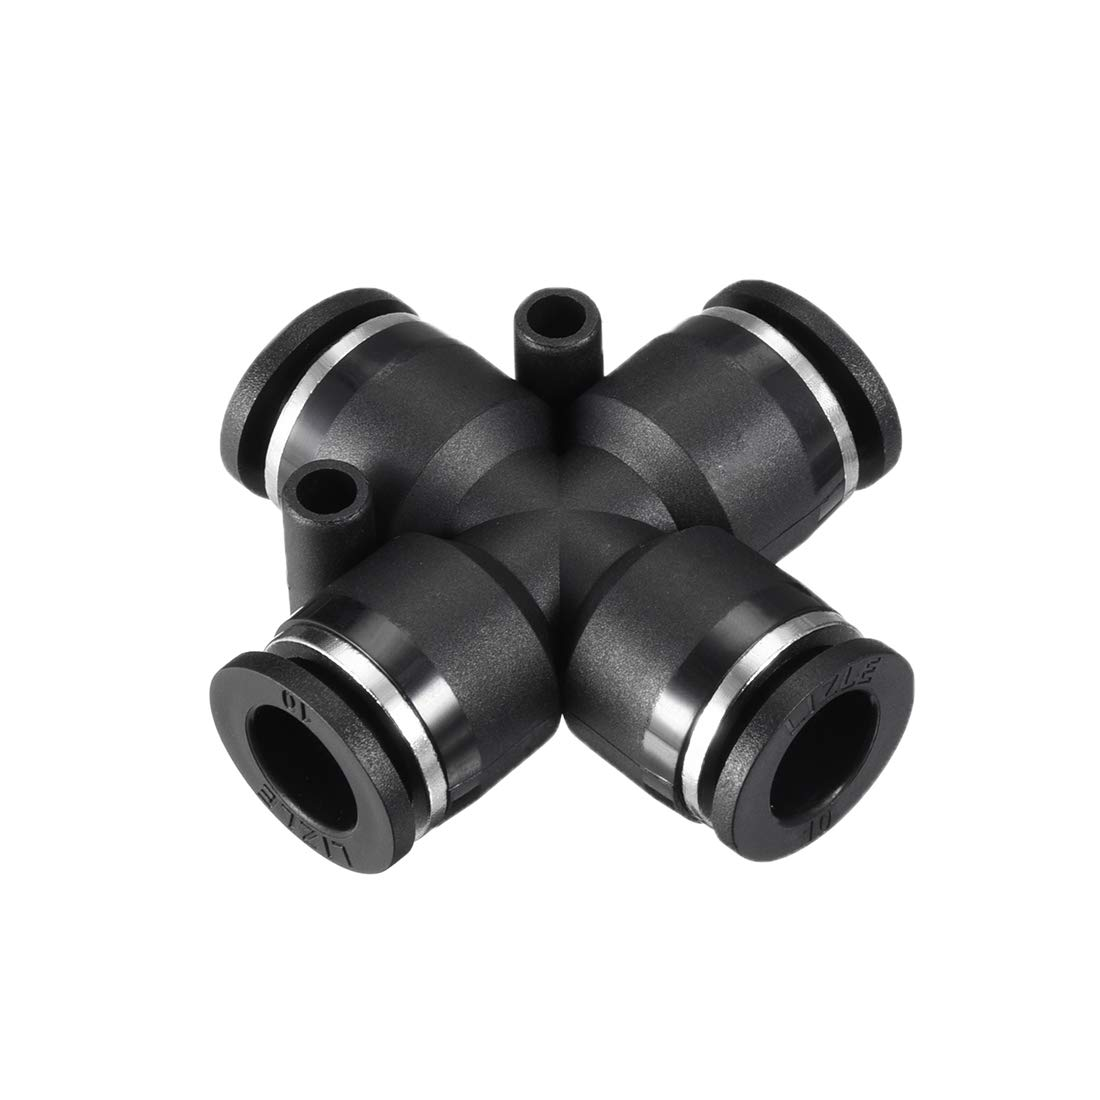 uxcell Plastic Cross Union Push to Connect Tube Fittings 10mm or 25/64